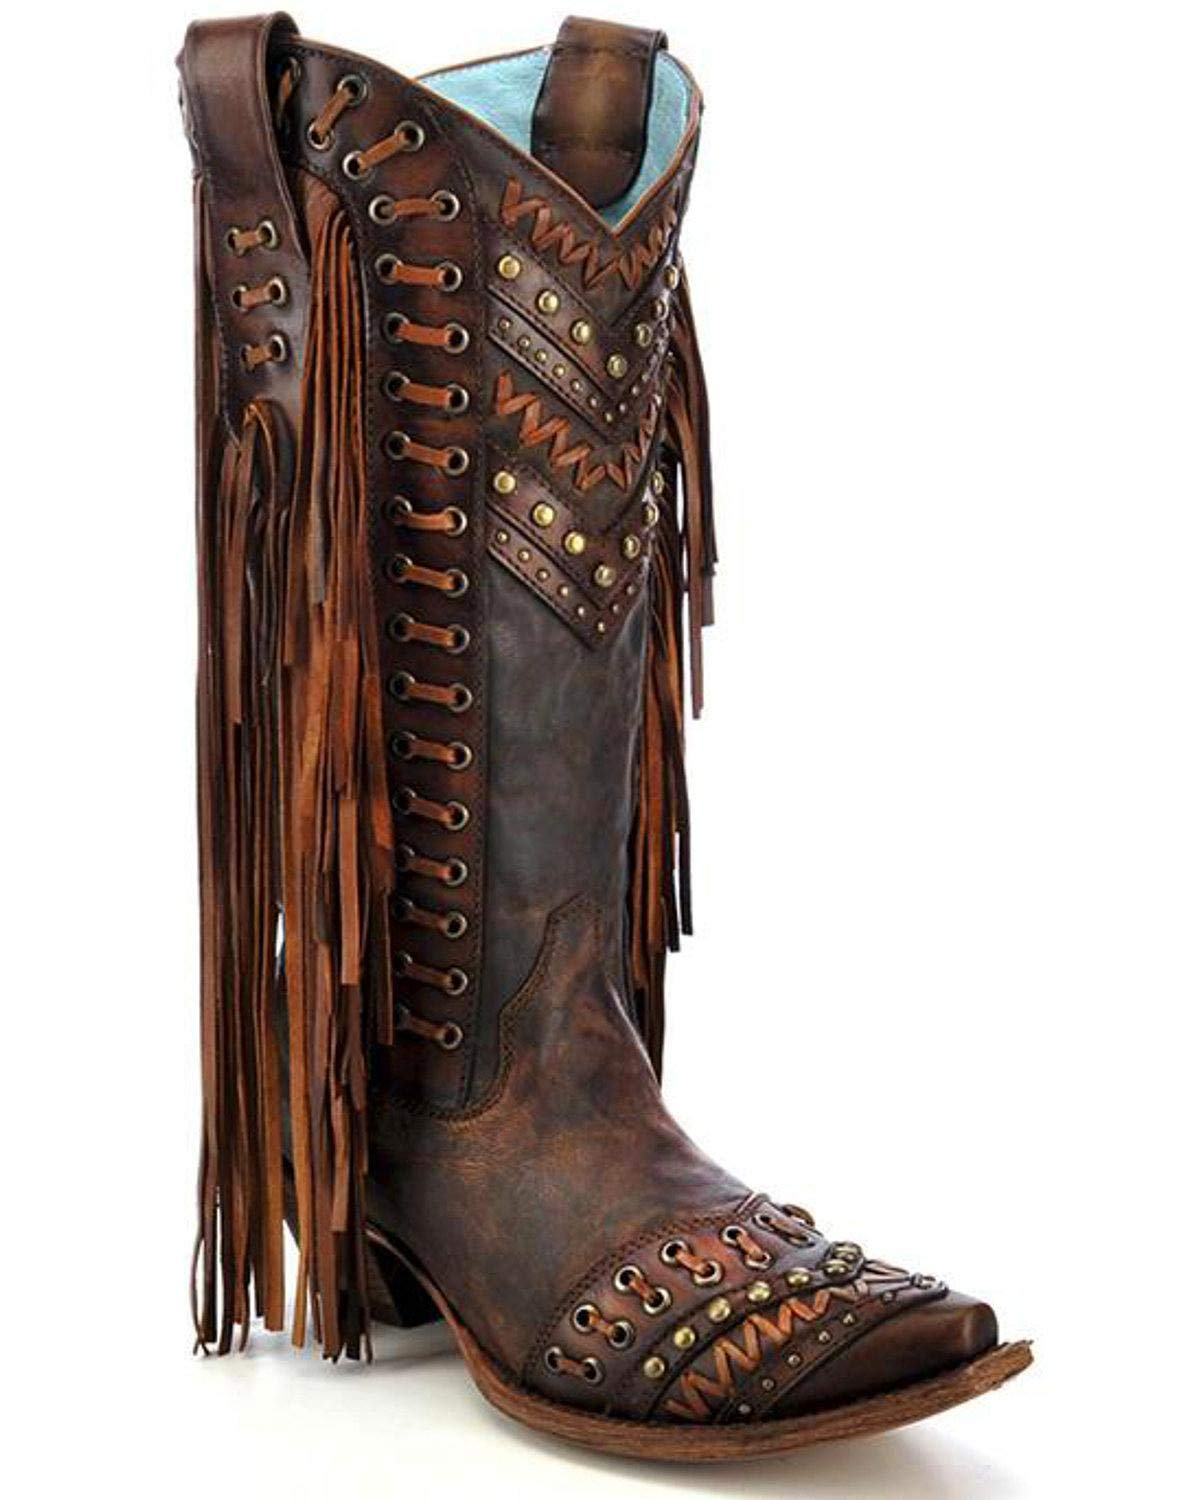 Brown 5 B(M) US Brown 5 B(M) US Corral Women's 14-inch Brown Tan Woven Details & Fringed Sides Snip Toe Cowboy Boots Sizes 5-12 B